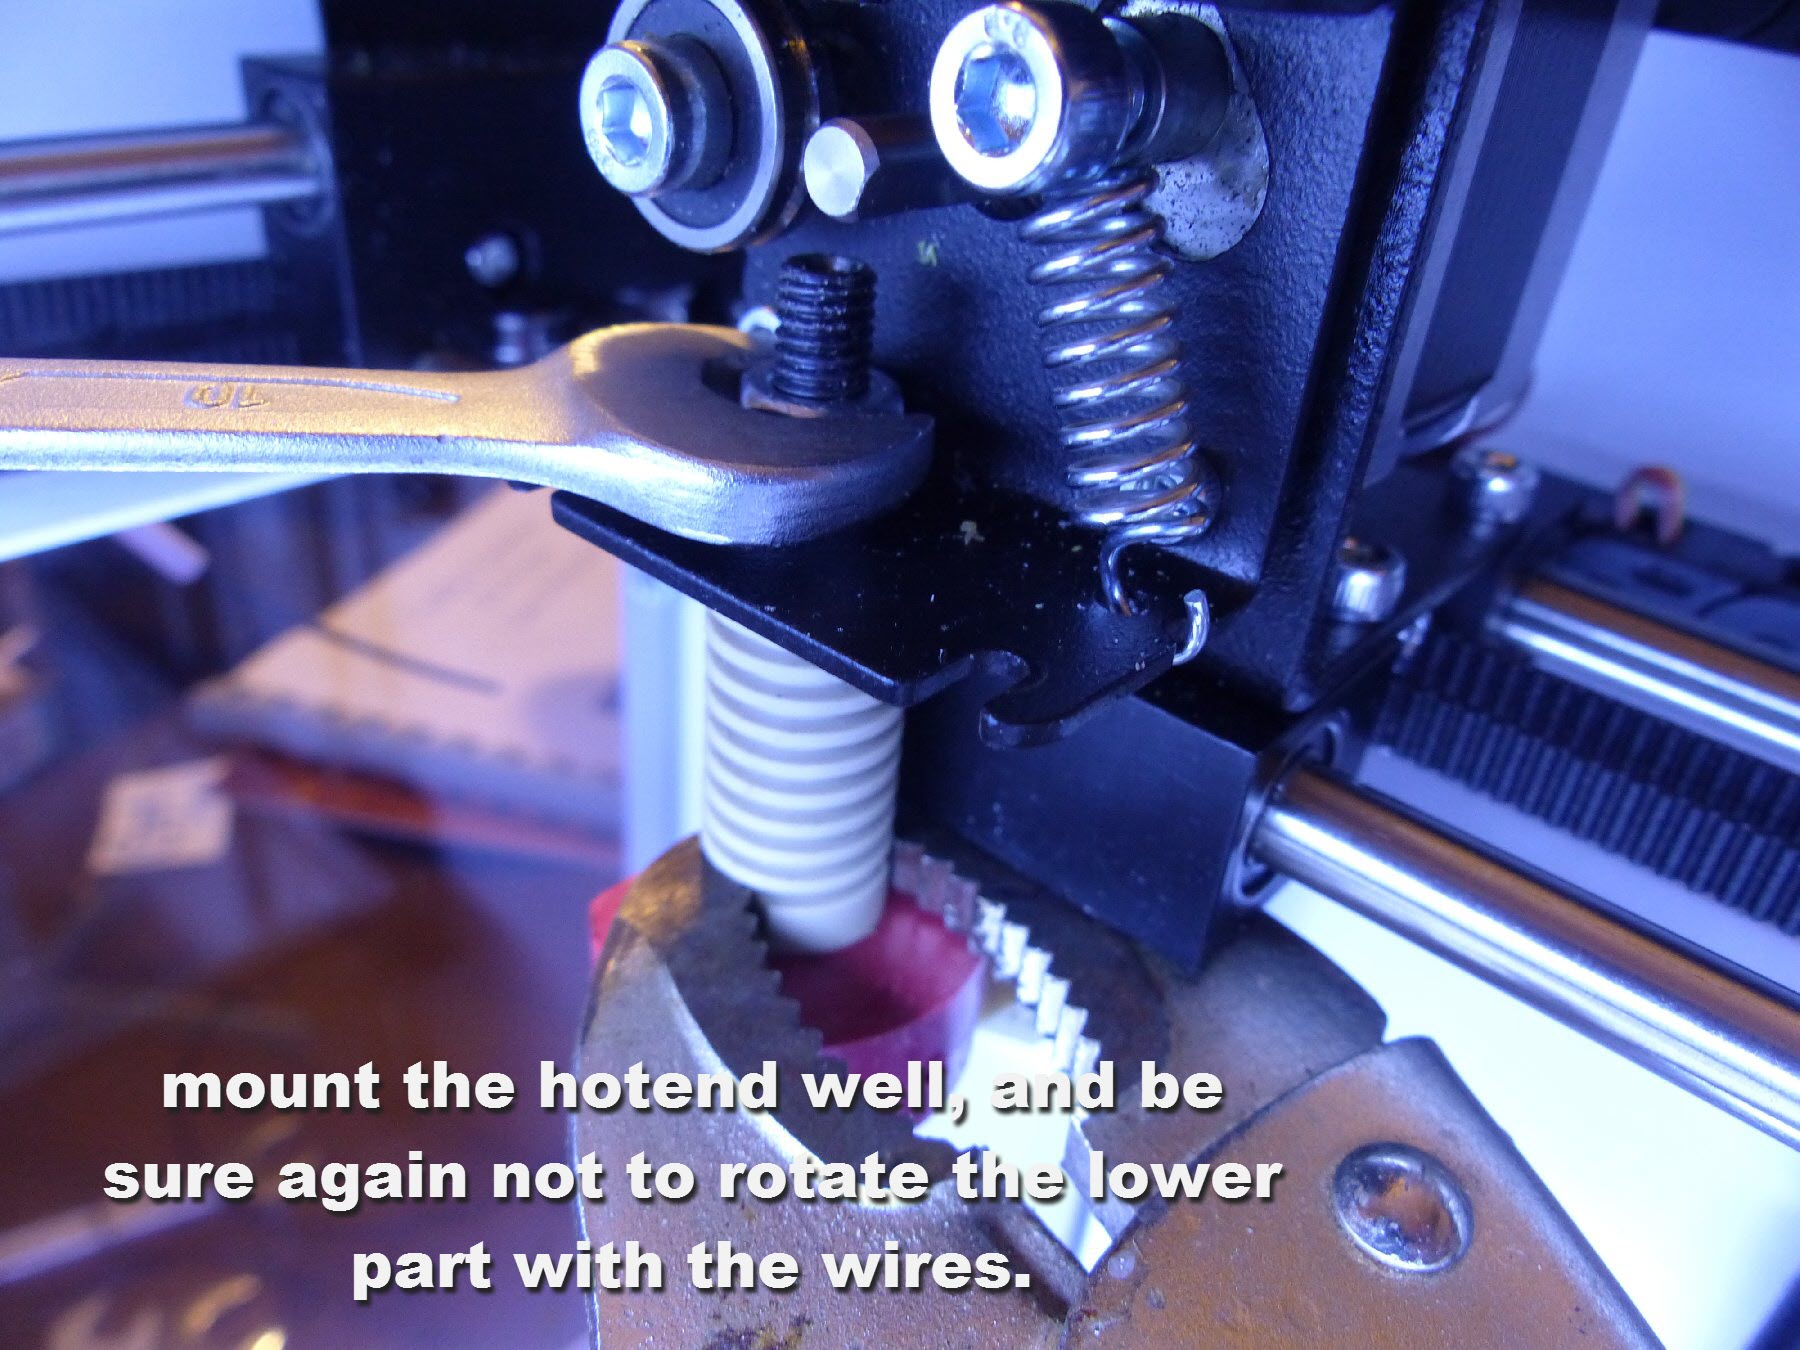 mini-17 mount and hold hotend